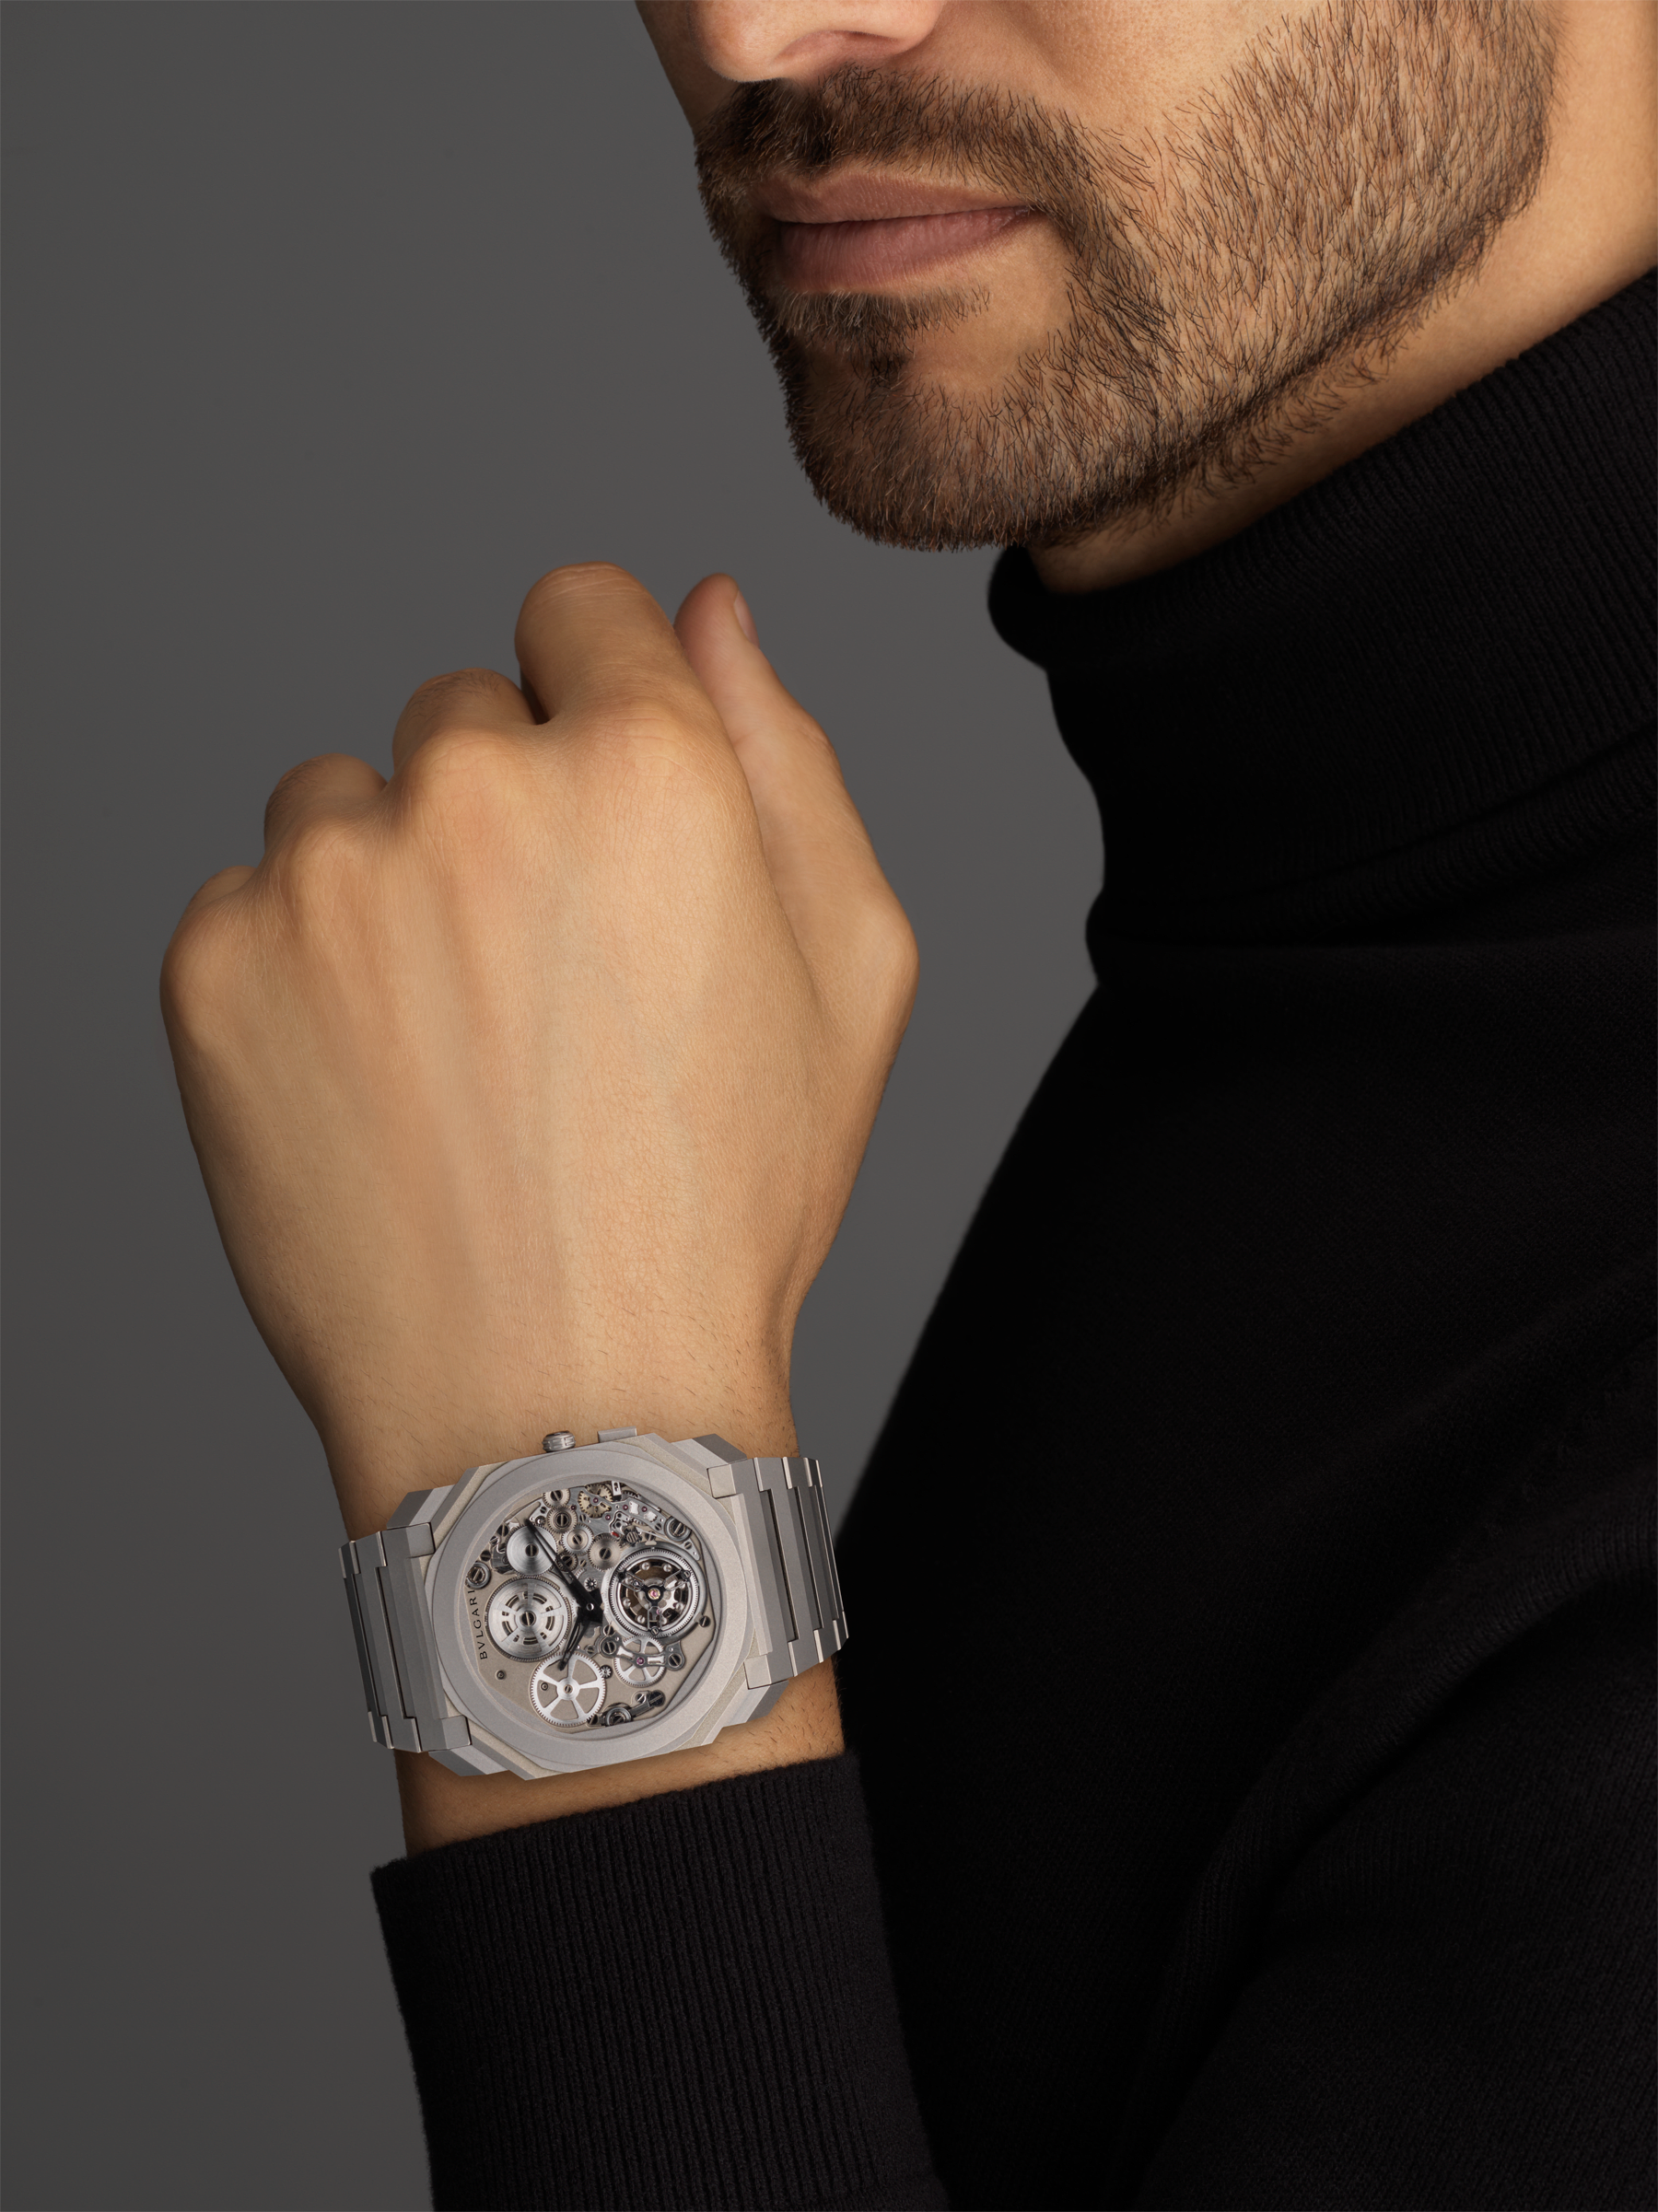 Octo Finissimo Tourbillon Automatic watch with manufacture mechanical movement, ultra-thin flying tourbillon, special ball bearing system, ultra-thin sandblasted titanium case and bracelet, and skeletonized sandblasted titanium dial 102937 image 4